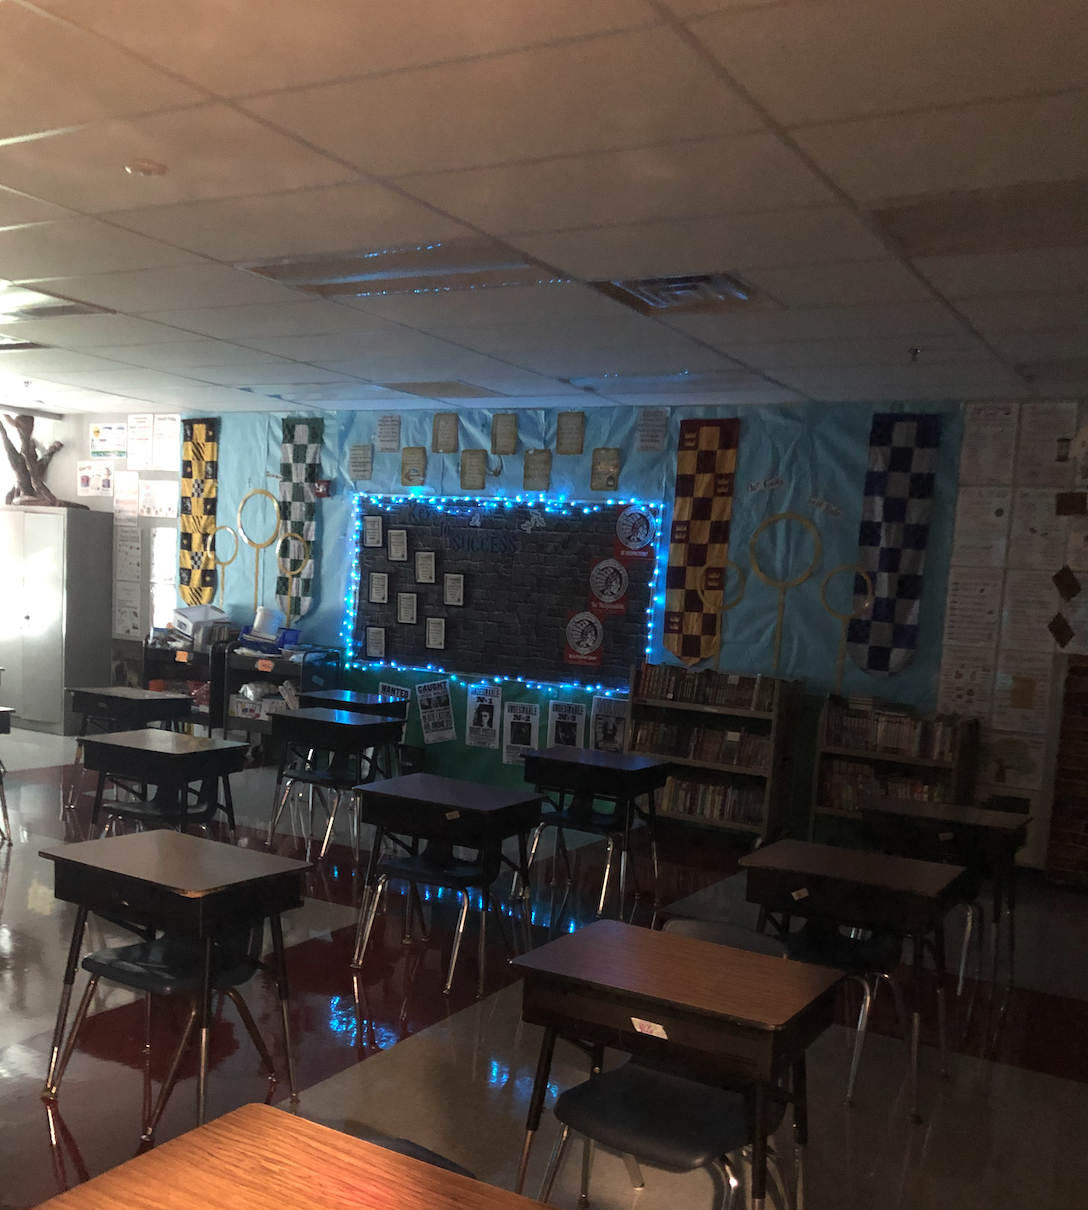 The last three pictures are just what the classroom looks like when the lights are off. This is the back bulletin board.